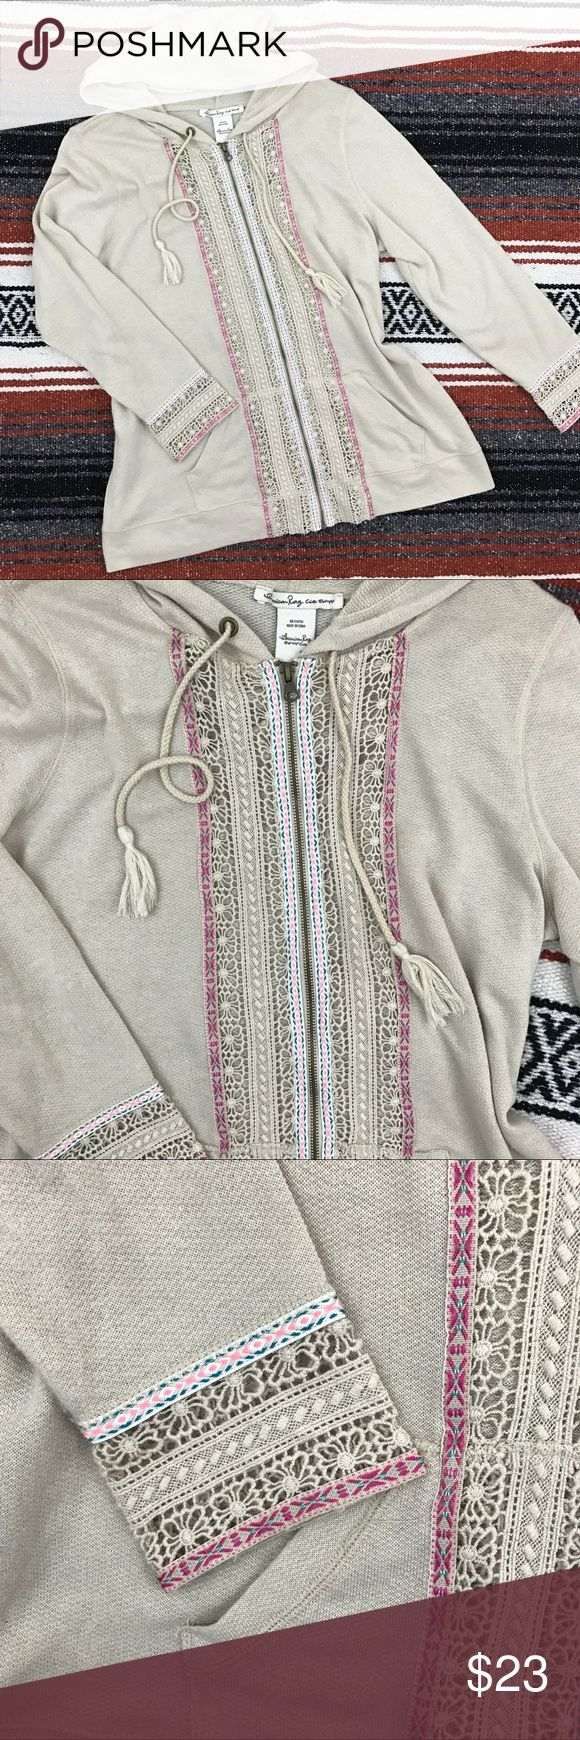 """American Rag Boho Crochet Lace Lightweight Zip Up Great closet staple for you boho beauties!  Size 1x Sleeve length 28"""" Armpit to armpit 21"""" Length 27""""  Preloved but still in great condition    **I list on multiple platforms, make me an offer before this listing is gone!** American Rag Tops Sweatshirts & Hoodies"""